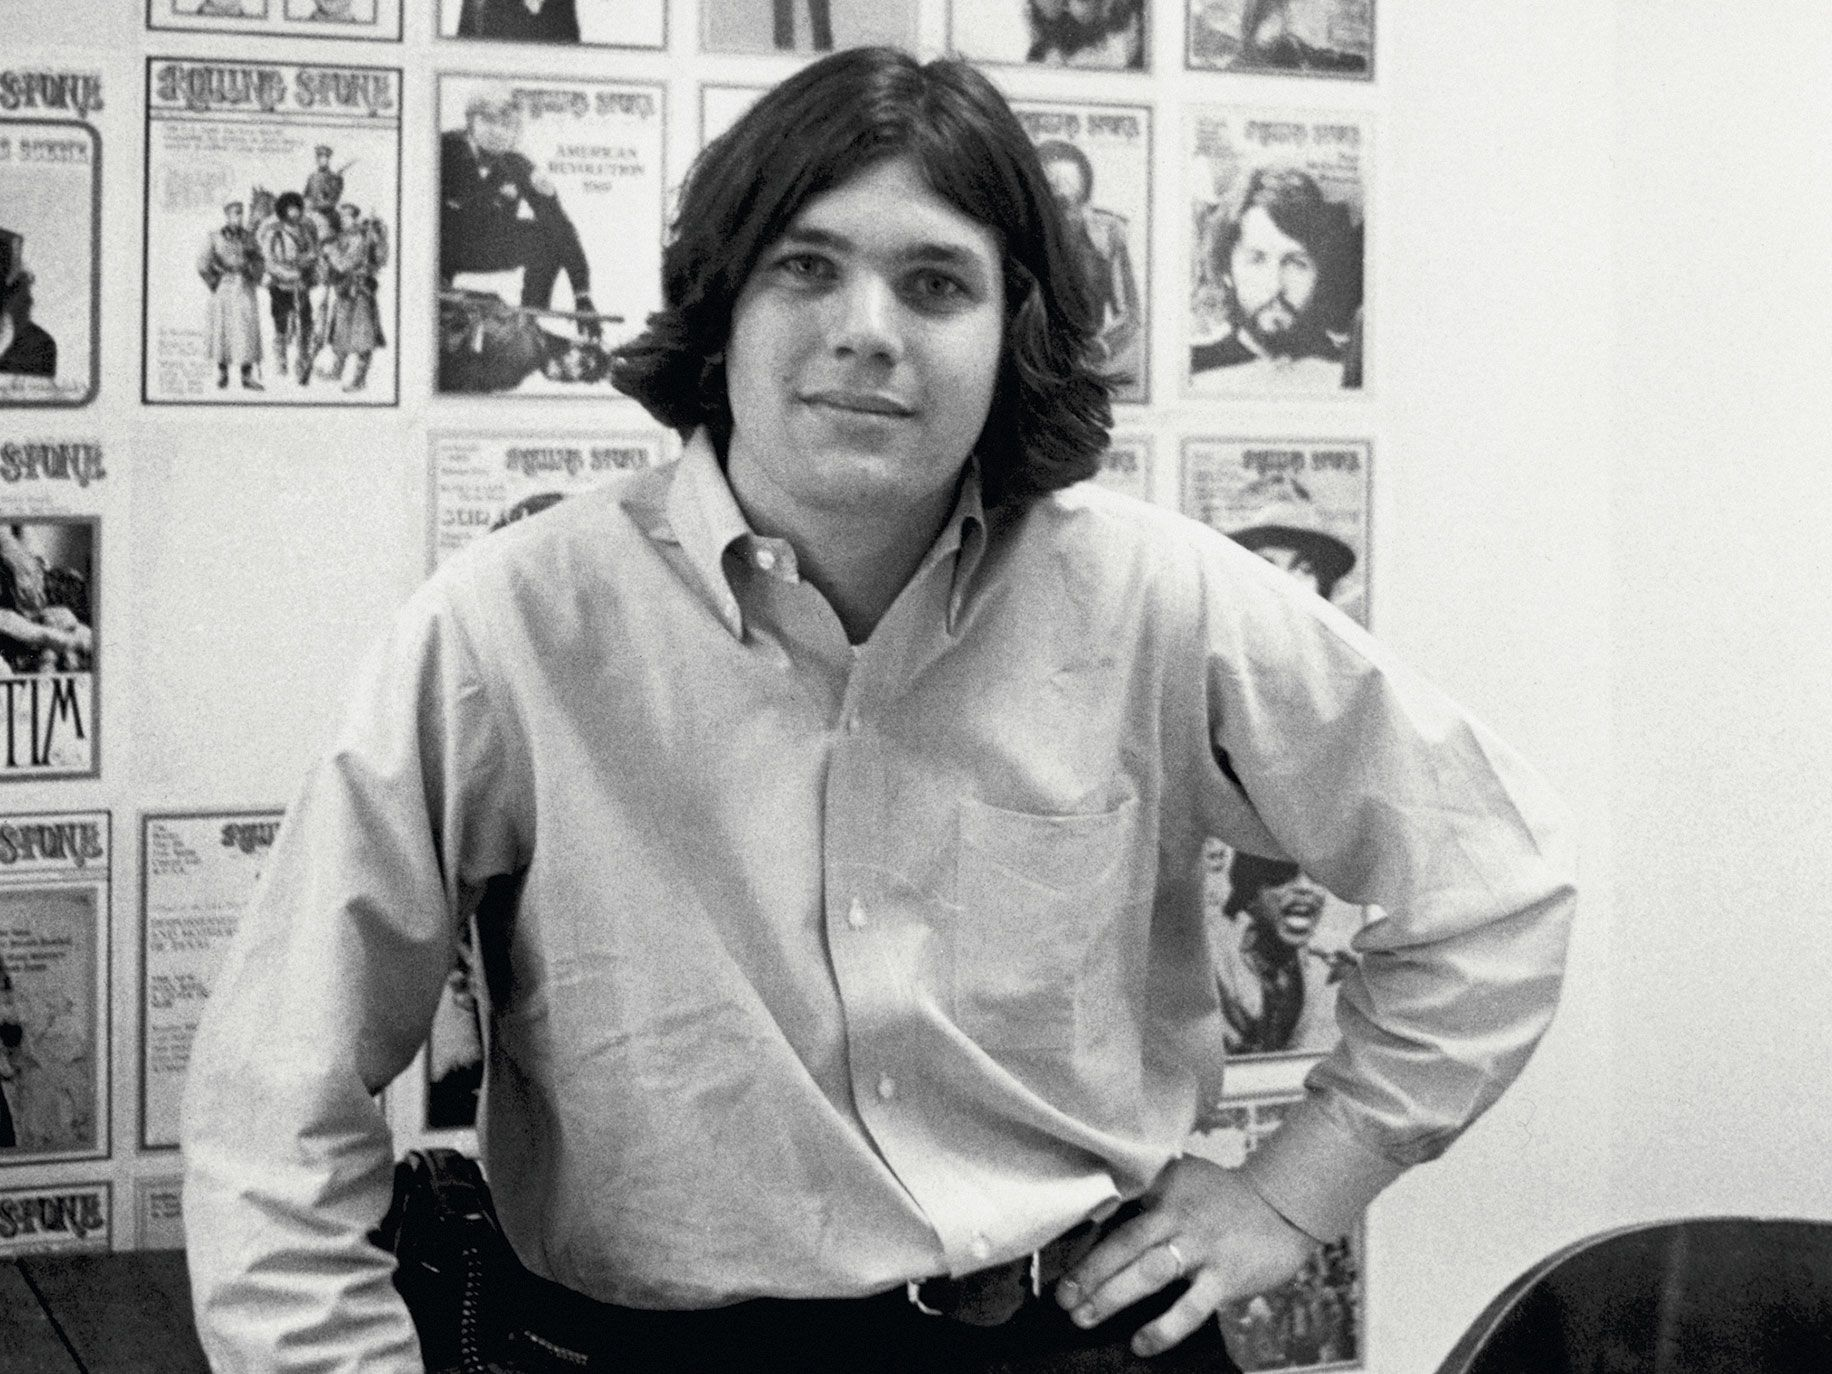 By 1969, Jann Wenner had turned Rolling Stone into the bible of rock music and popular culture. It was all downhill from there.